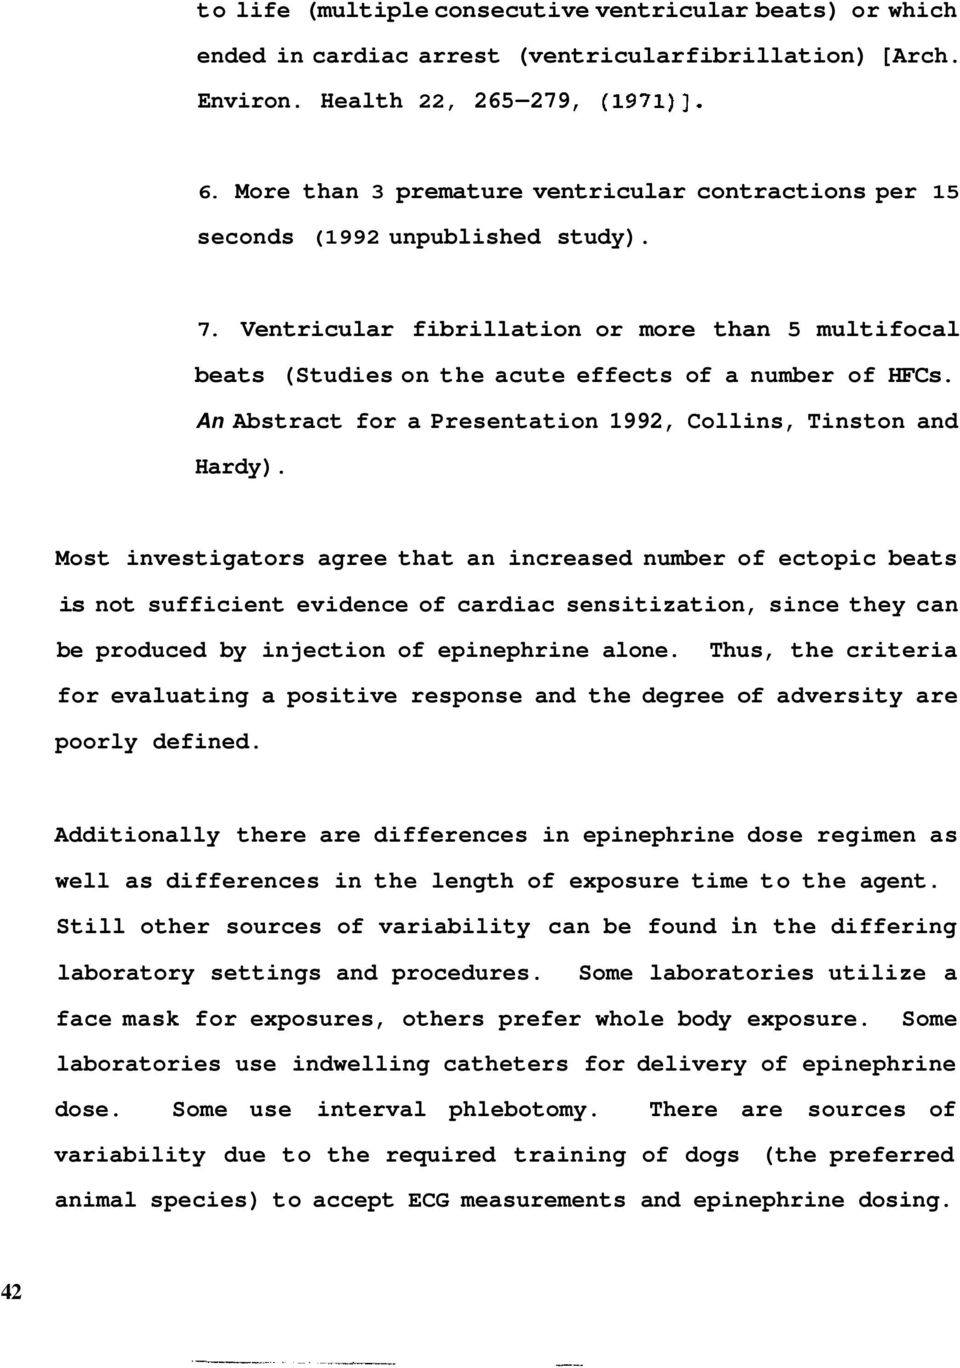 An Abstract for a Presentation 1992, Collins, Tinston and Hardy).